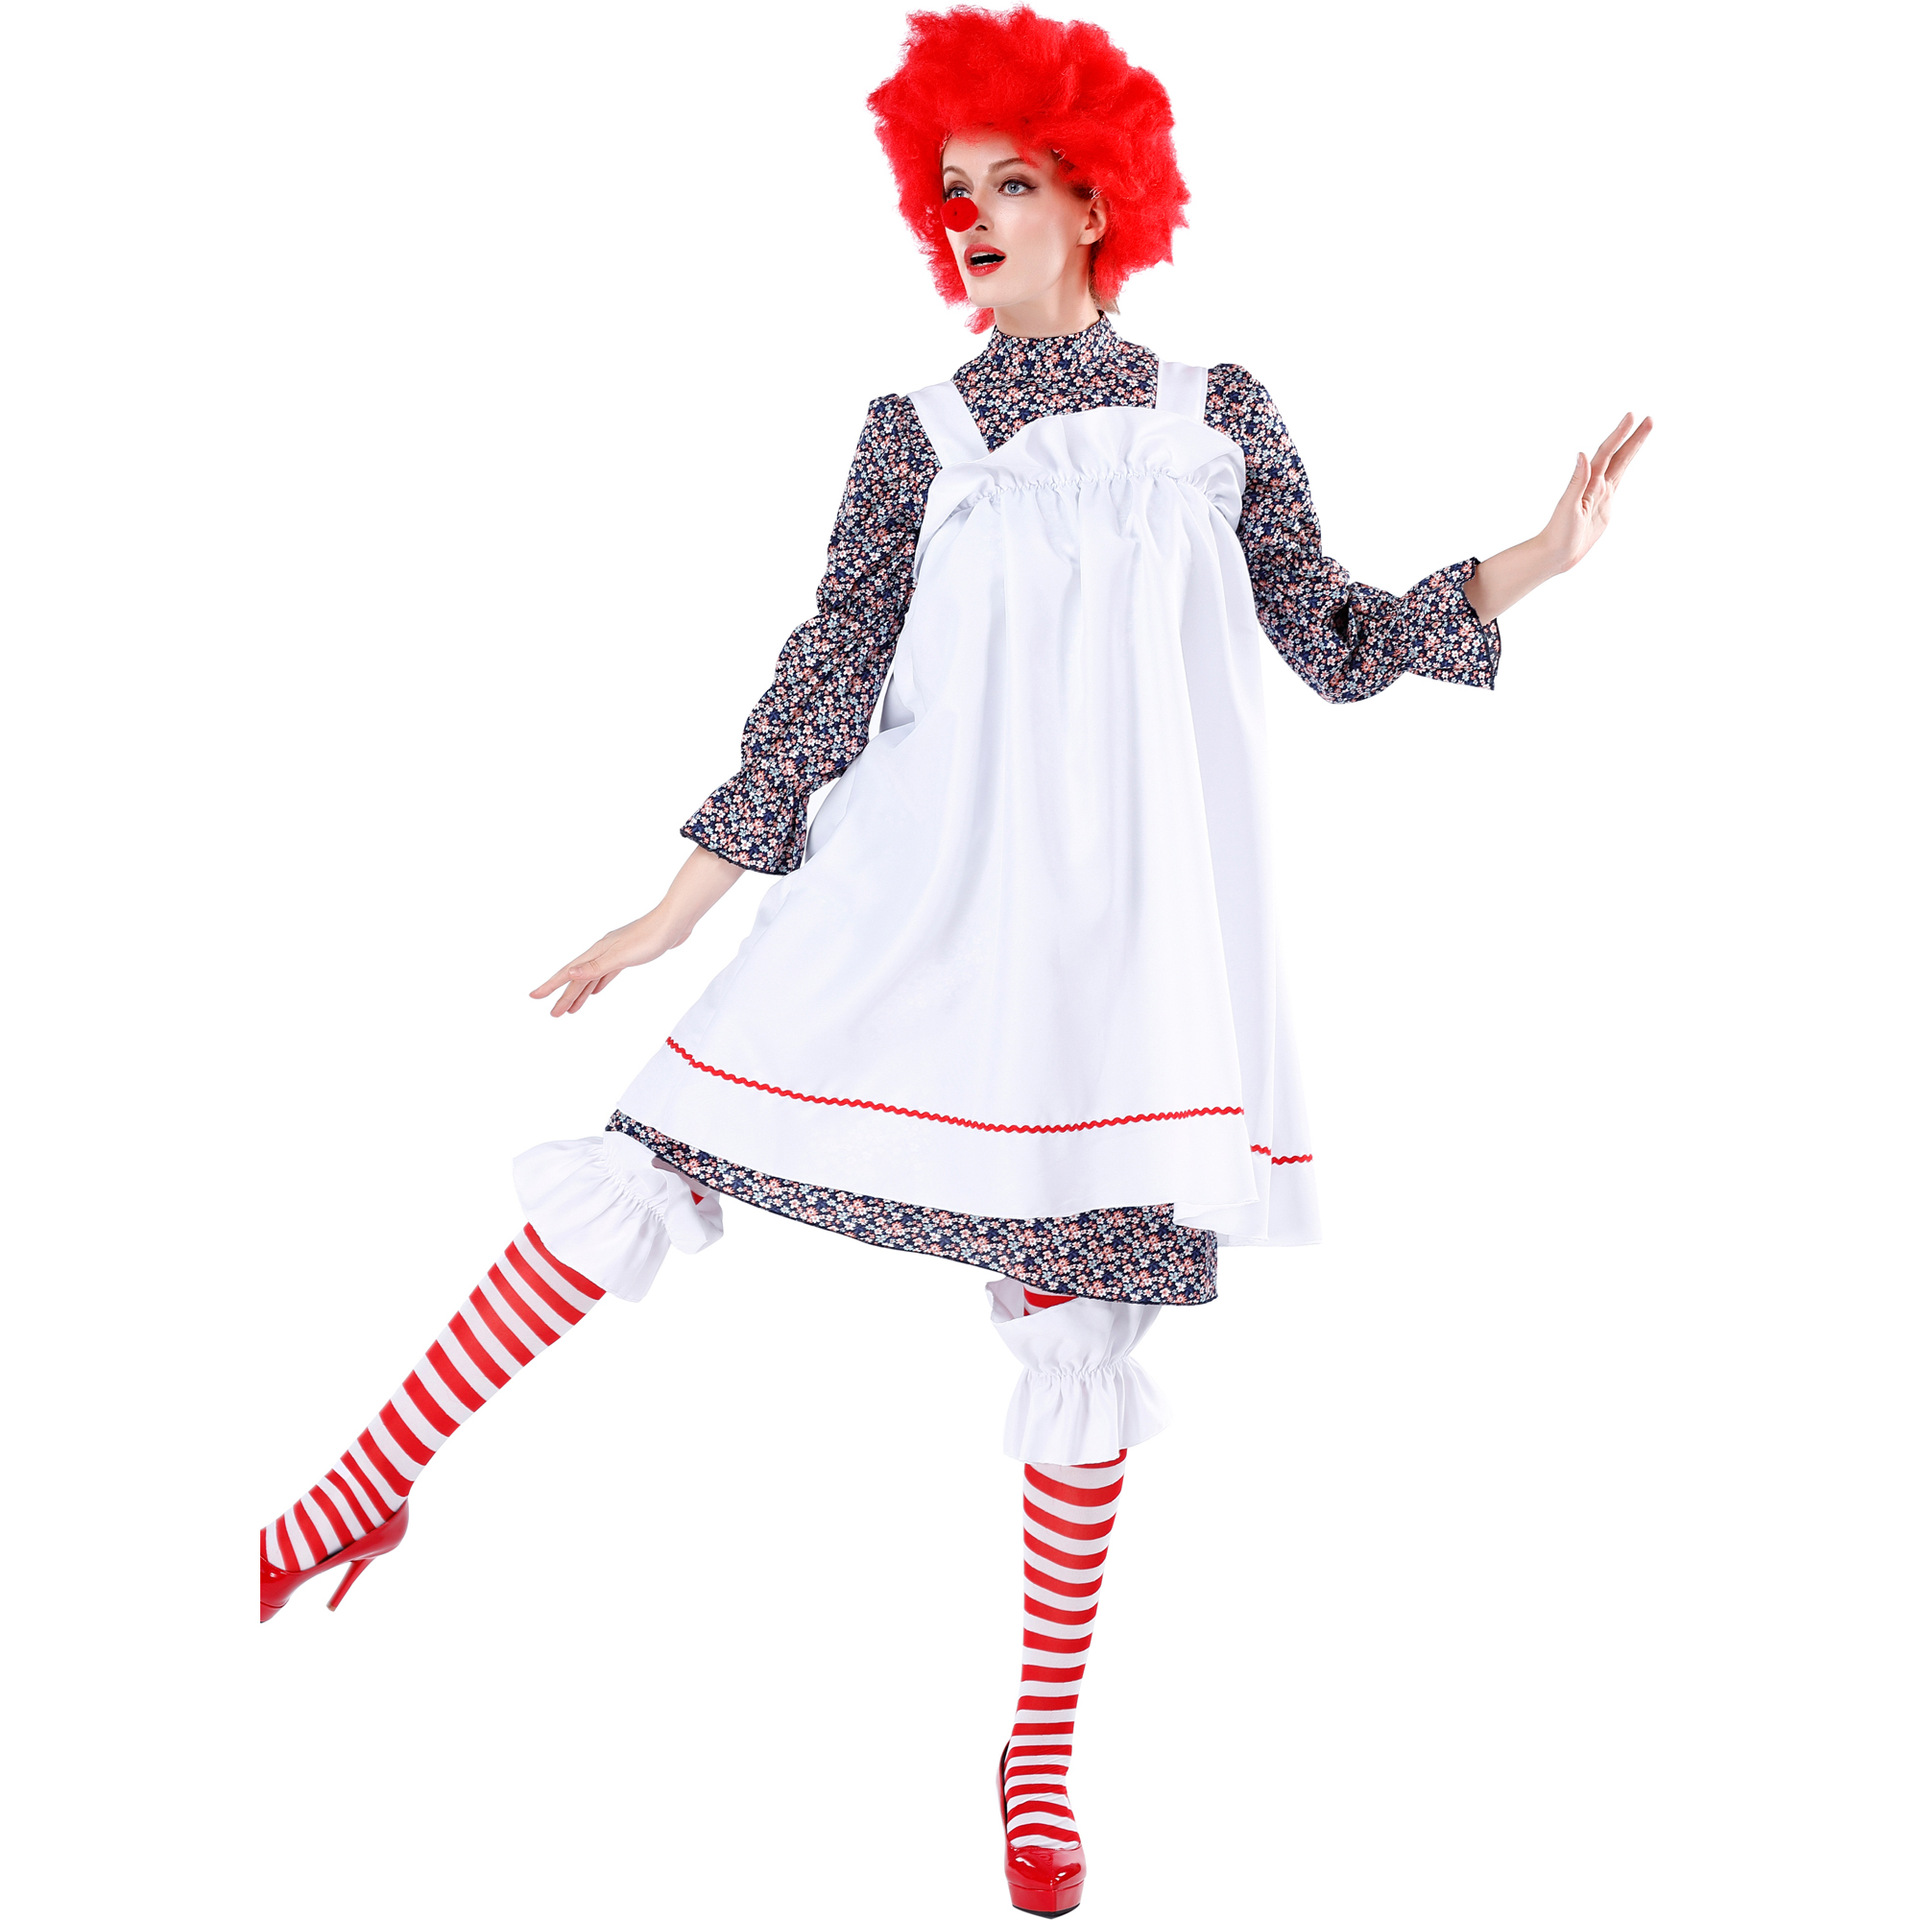 Crazy clown costume costume costume ball Halloween Cosplay role play adult stage performance clothes